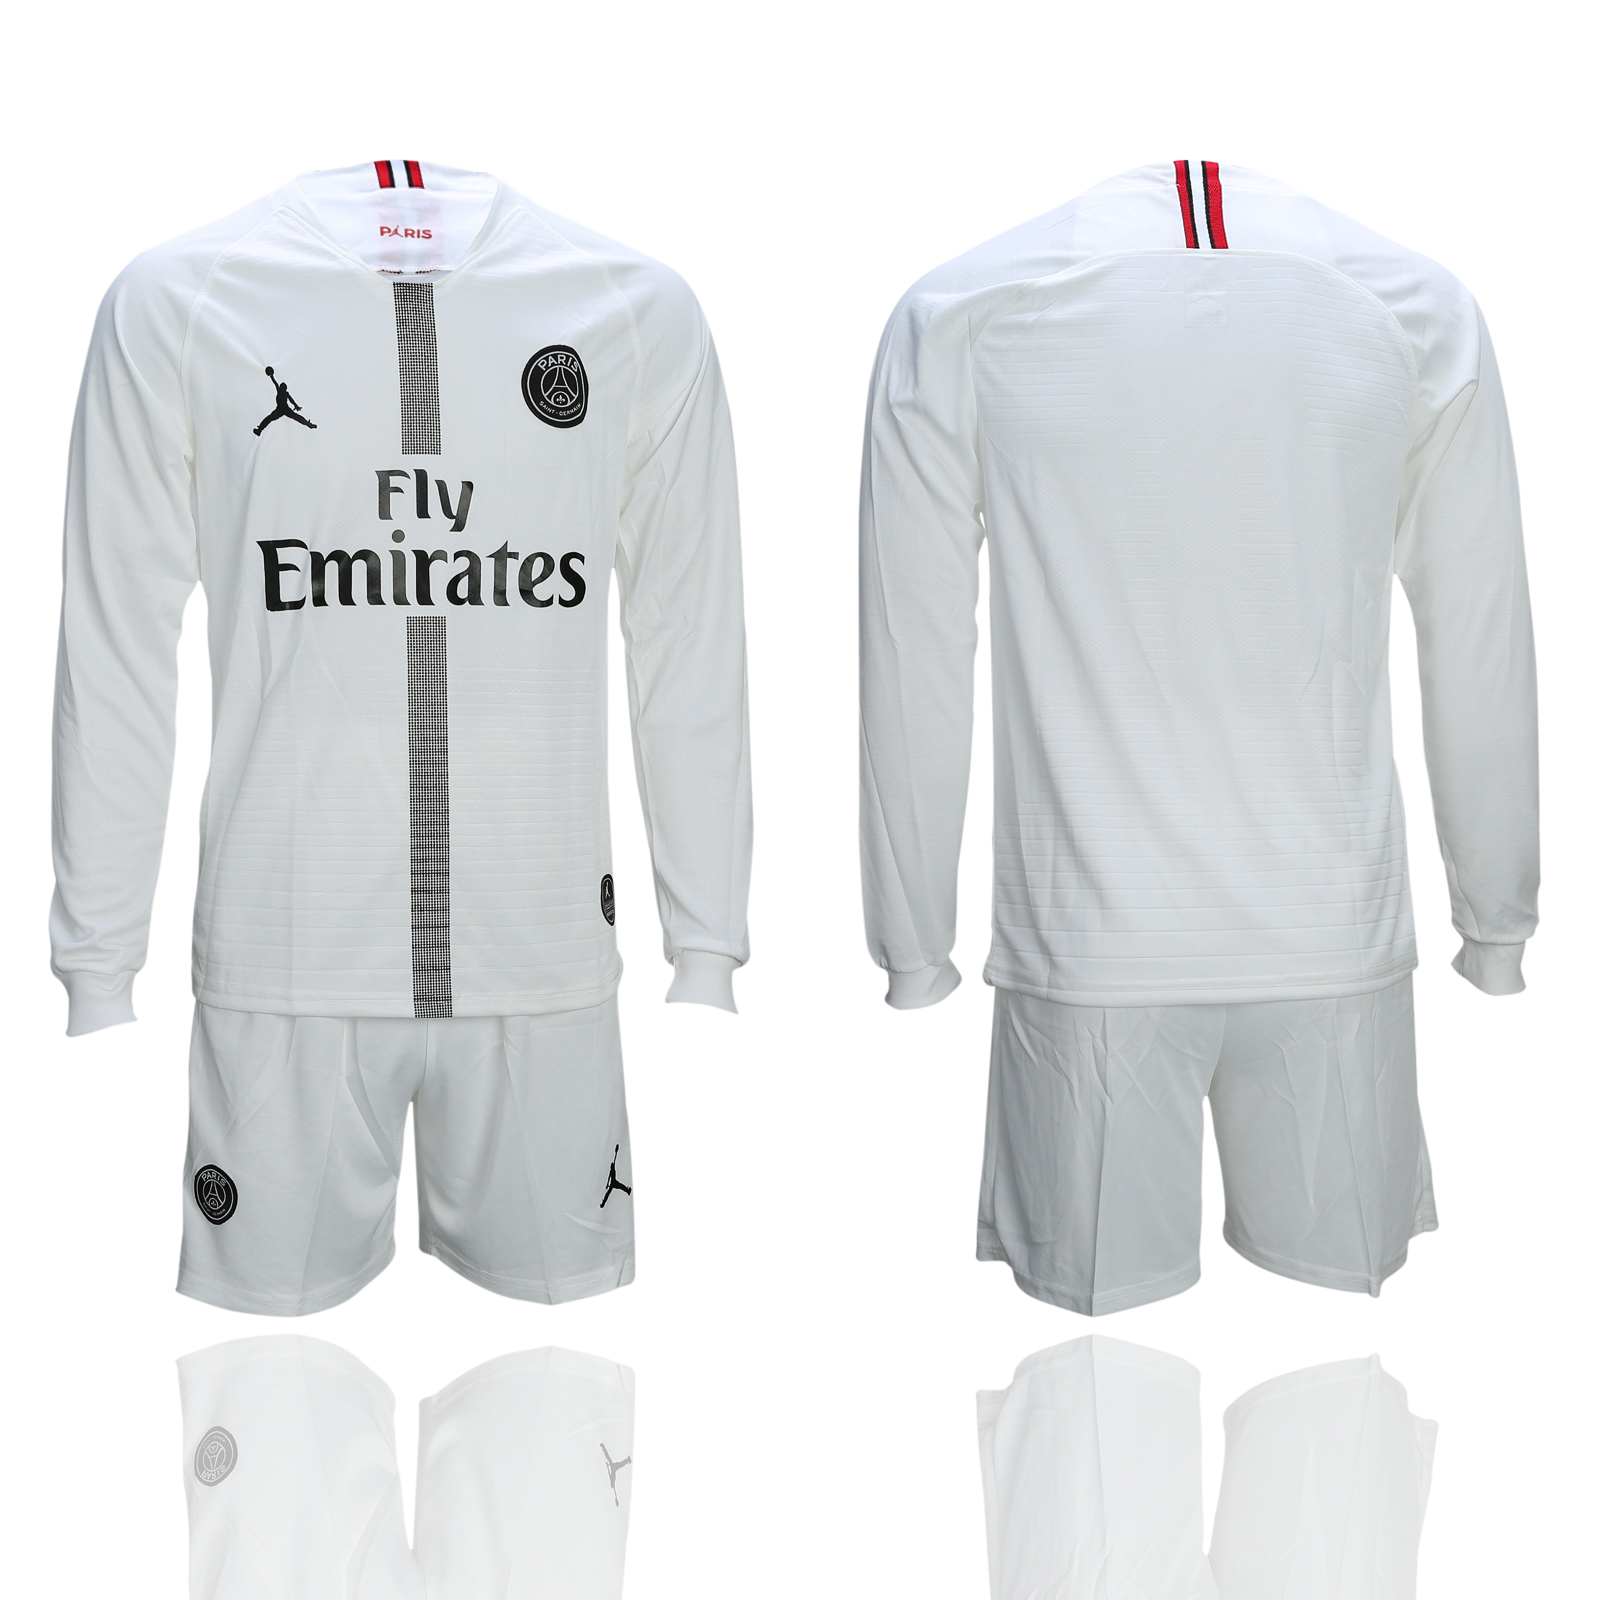 2018-19 Paris Saint-Germain White UEFA Champions League Long Sleeve Soccer Jersey